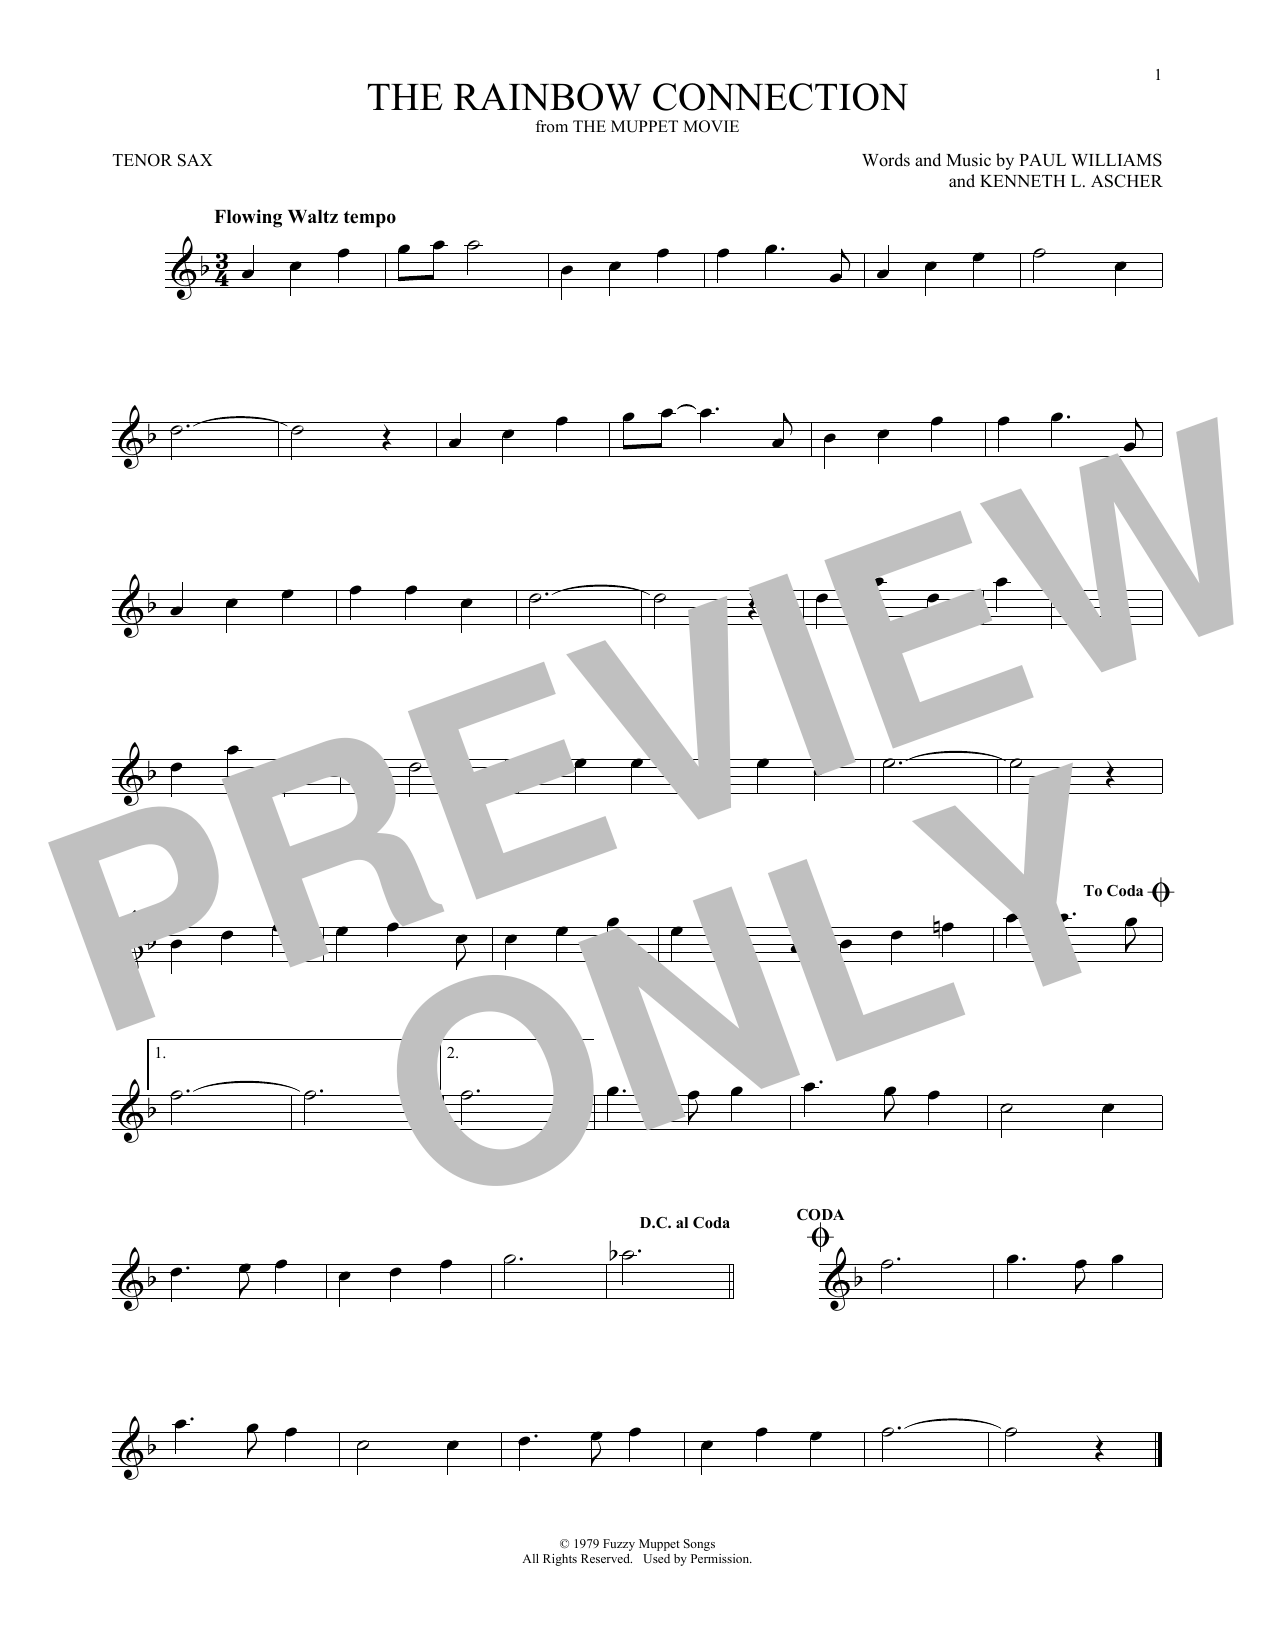 Sheet Music Digital Files To Print Licensed Paul Williams Digital